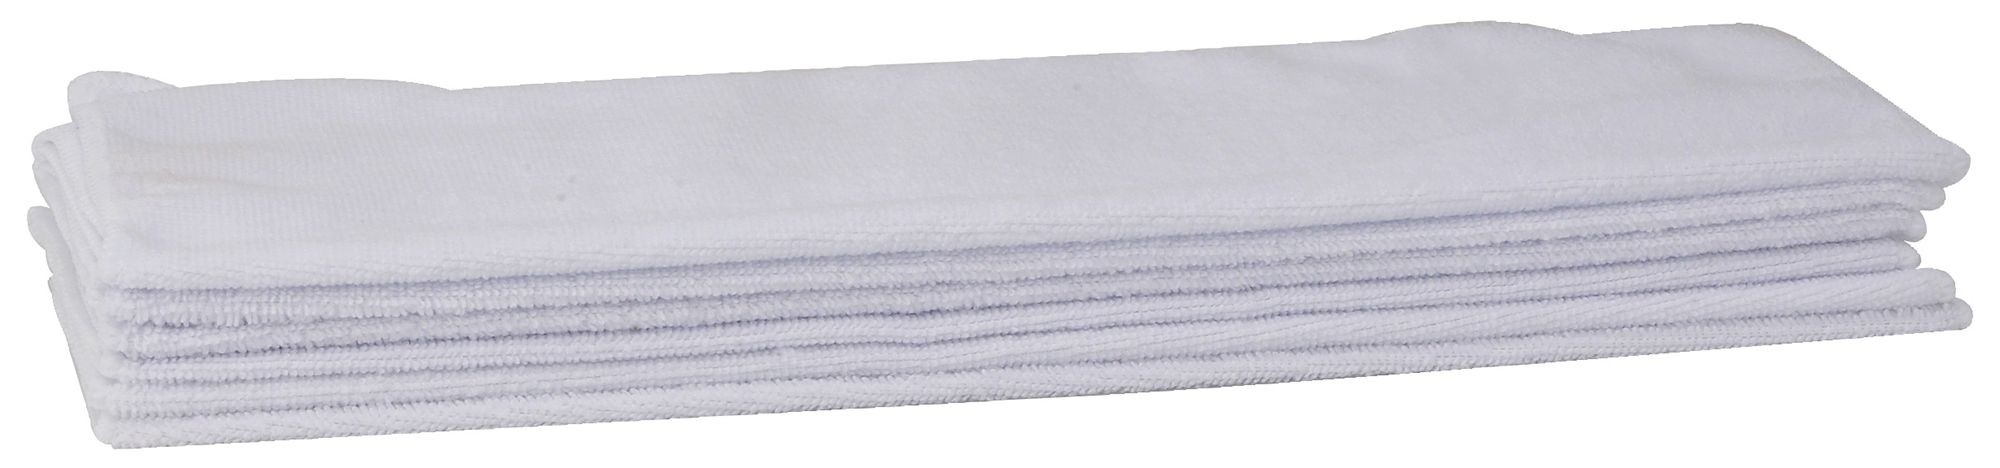 "Winco BTM-16W Microfiber Bar Towel Set, White 16"" x 16"""